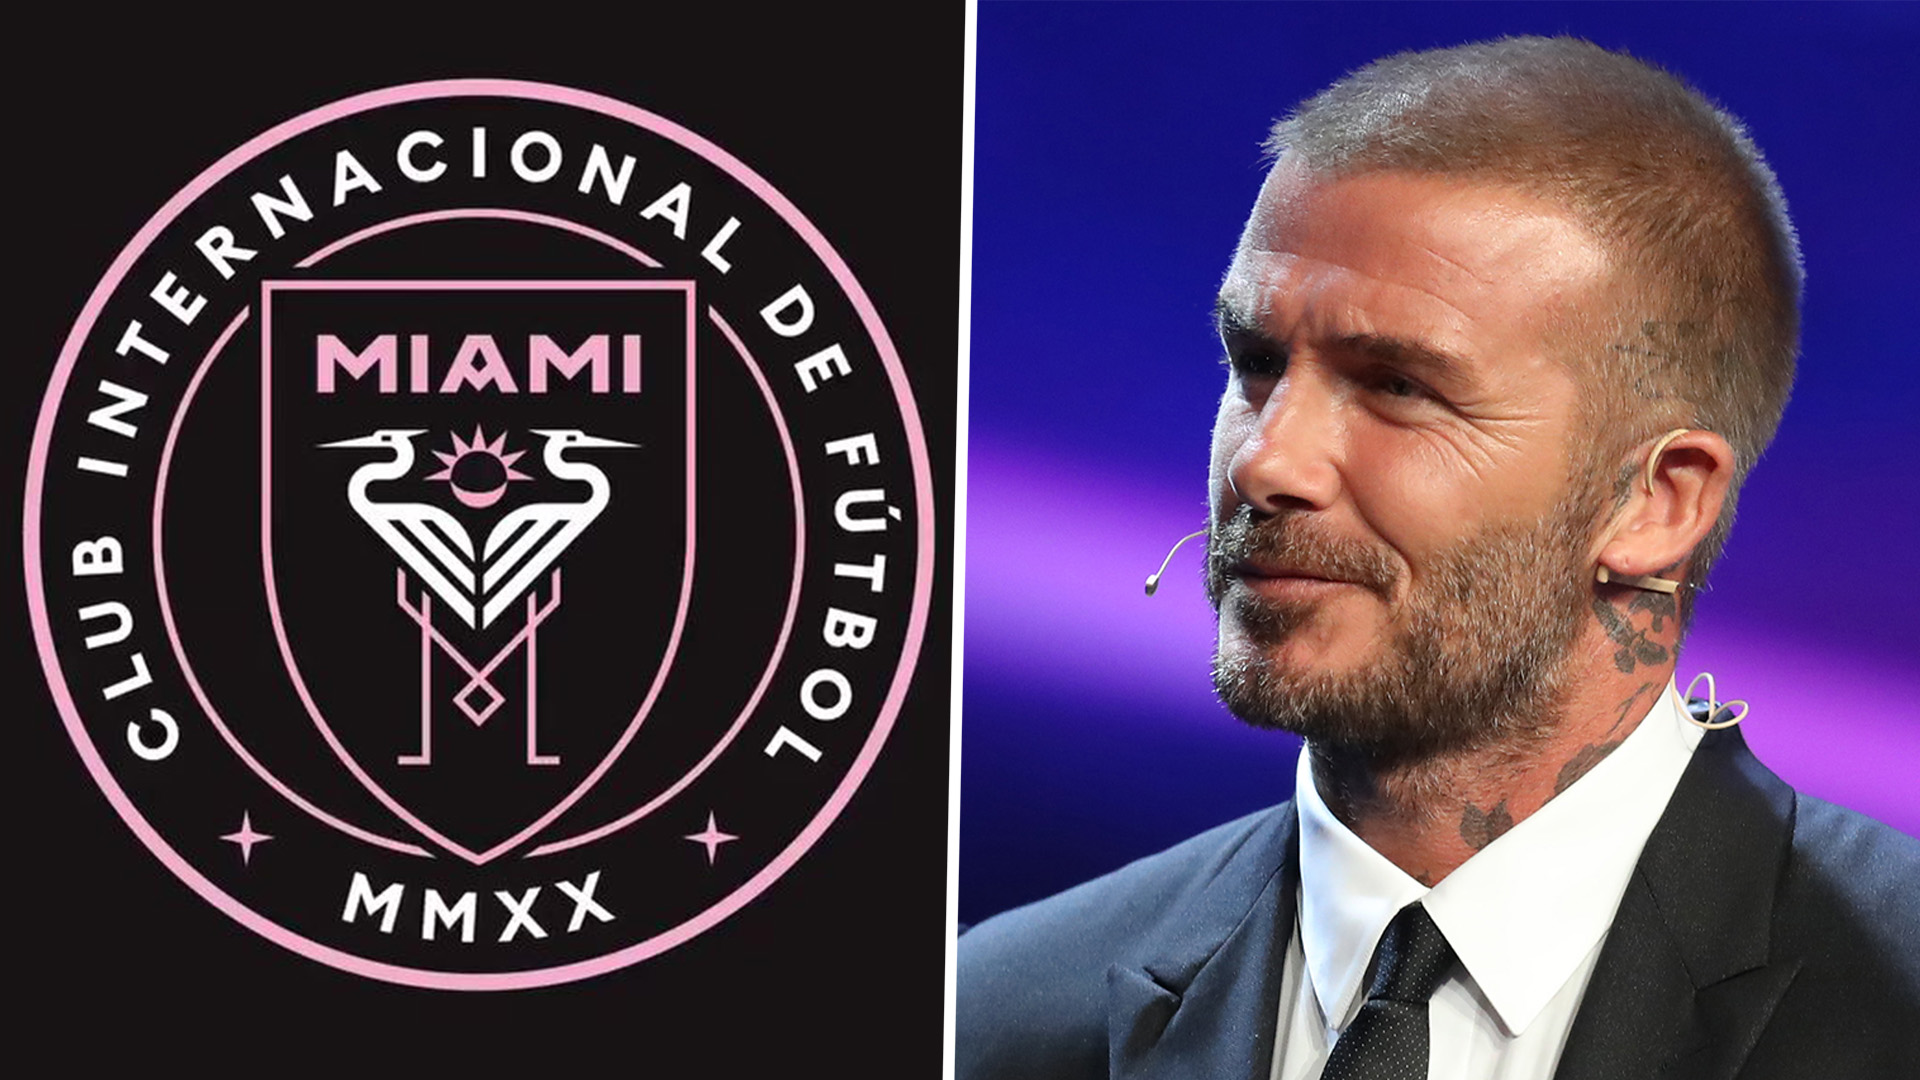 David Beckham's Miami MLS team reveals team name, club crest